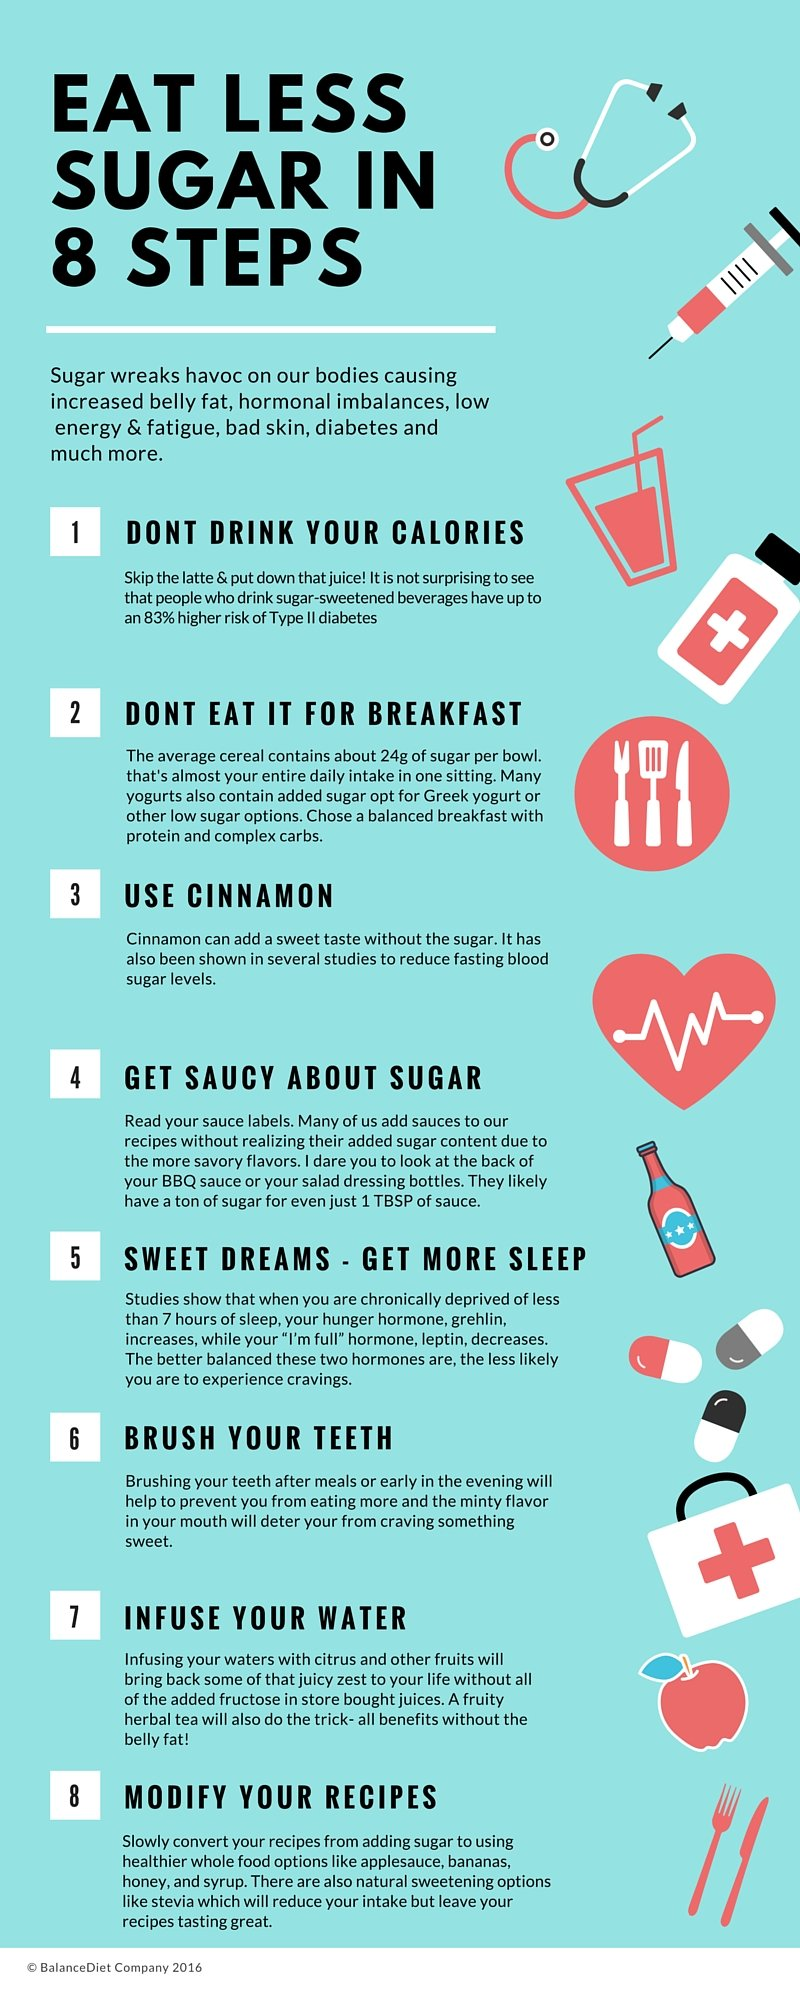 Eat Less Sugar in 8 Steps